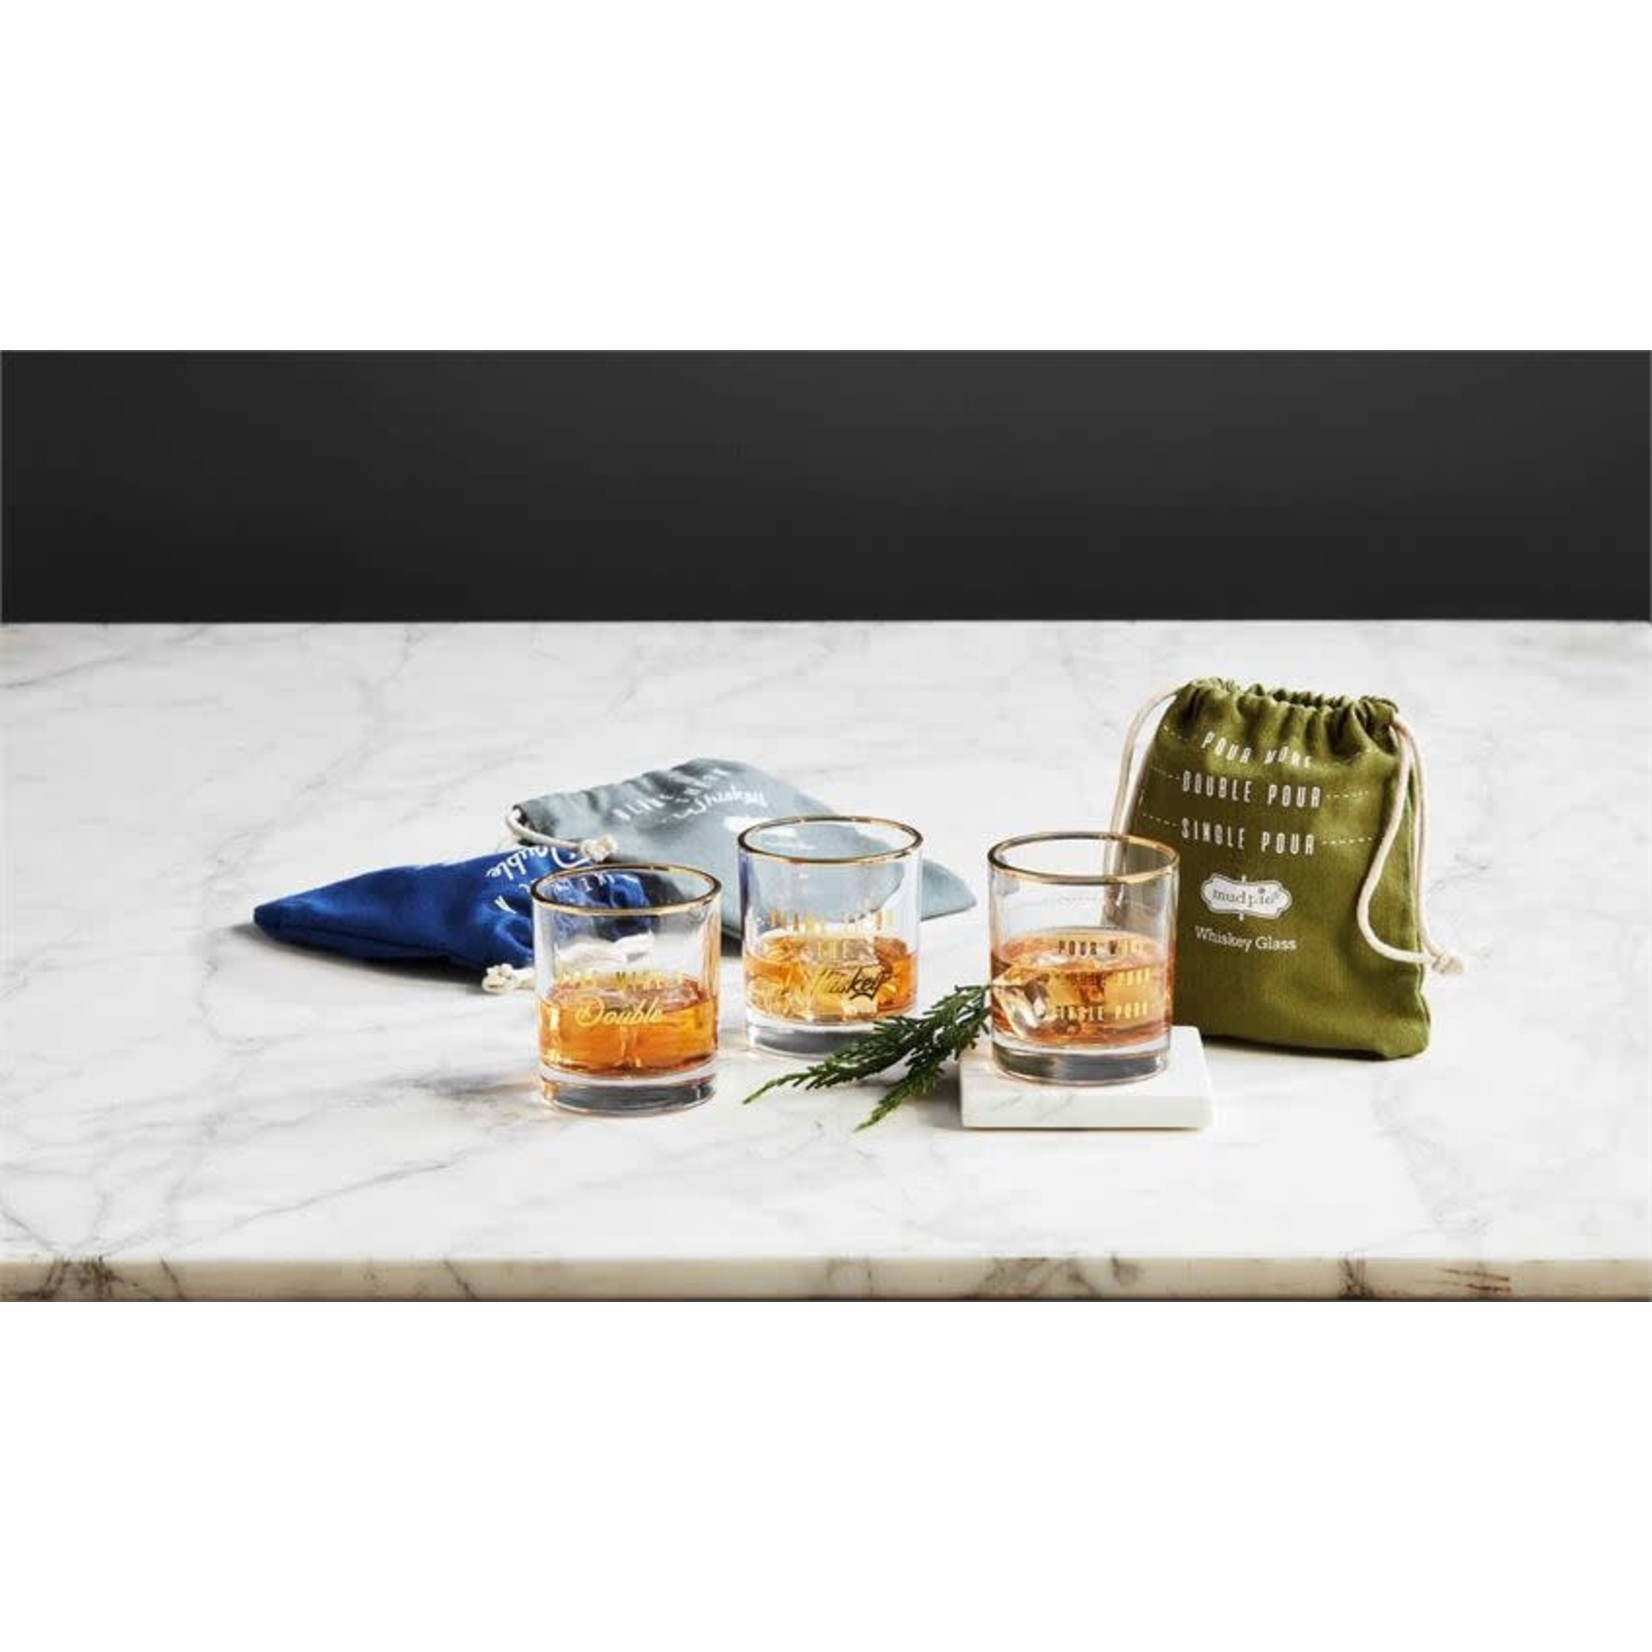 Bagged Whiskey Glass (Multiple Options)